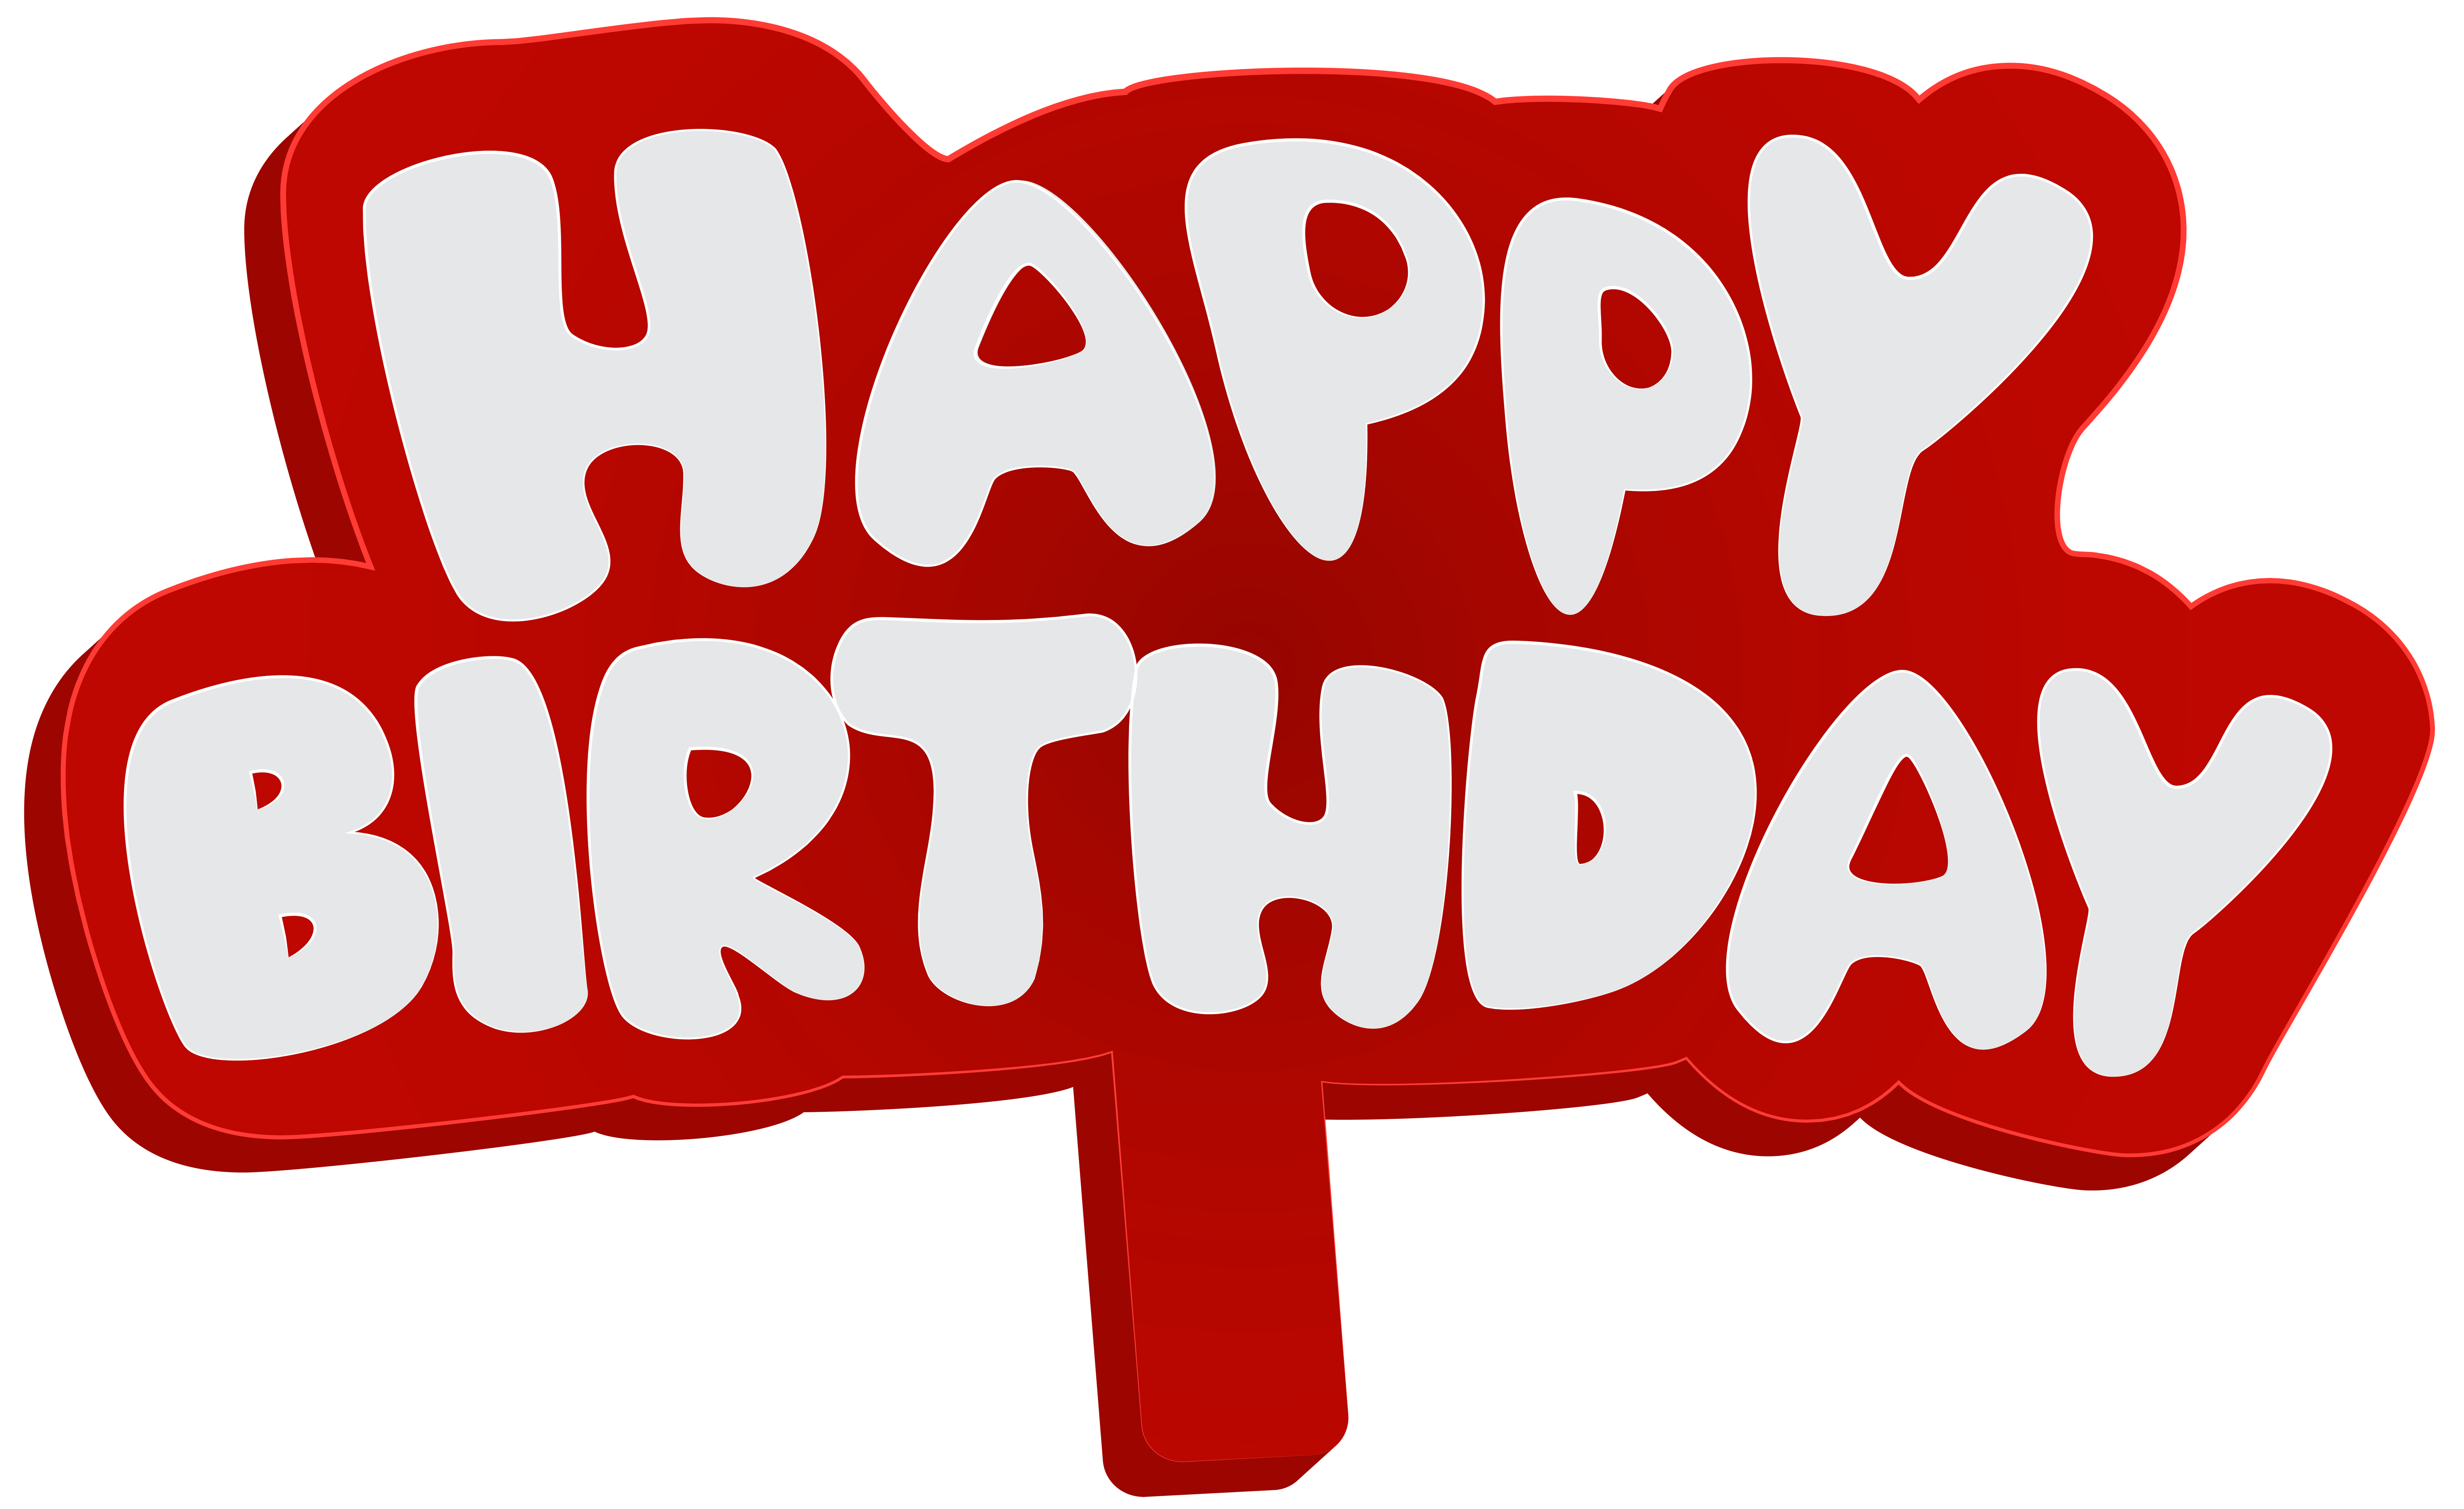 Flag clipart happy birthday. Png images free download